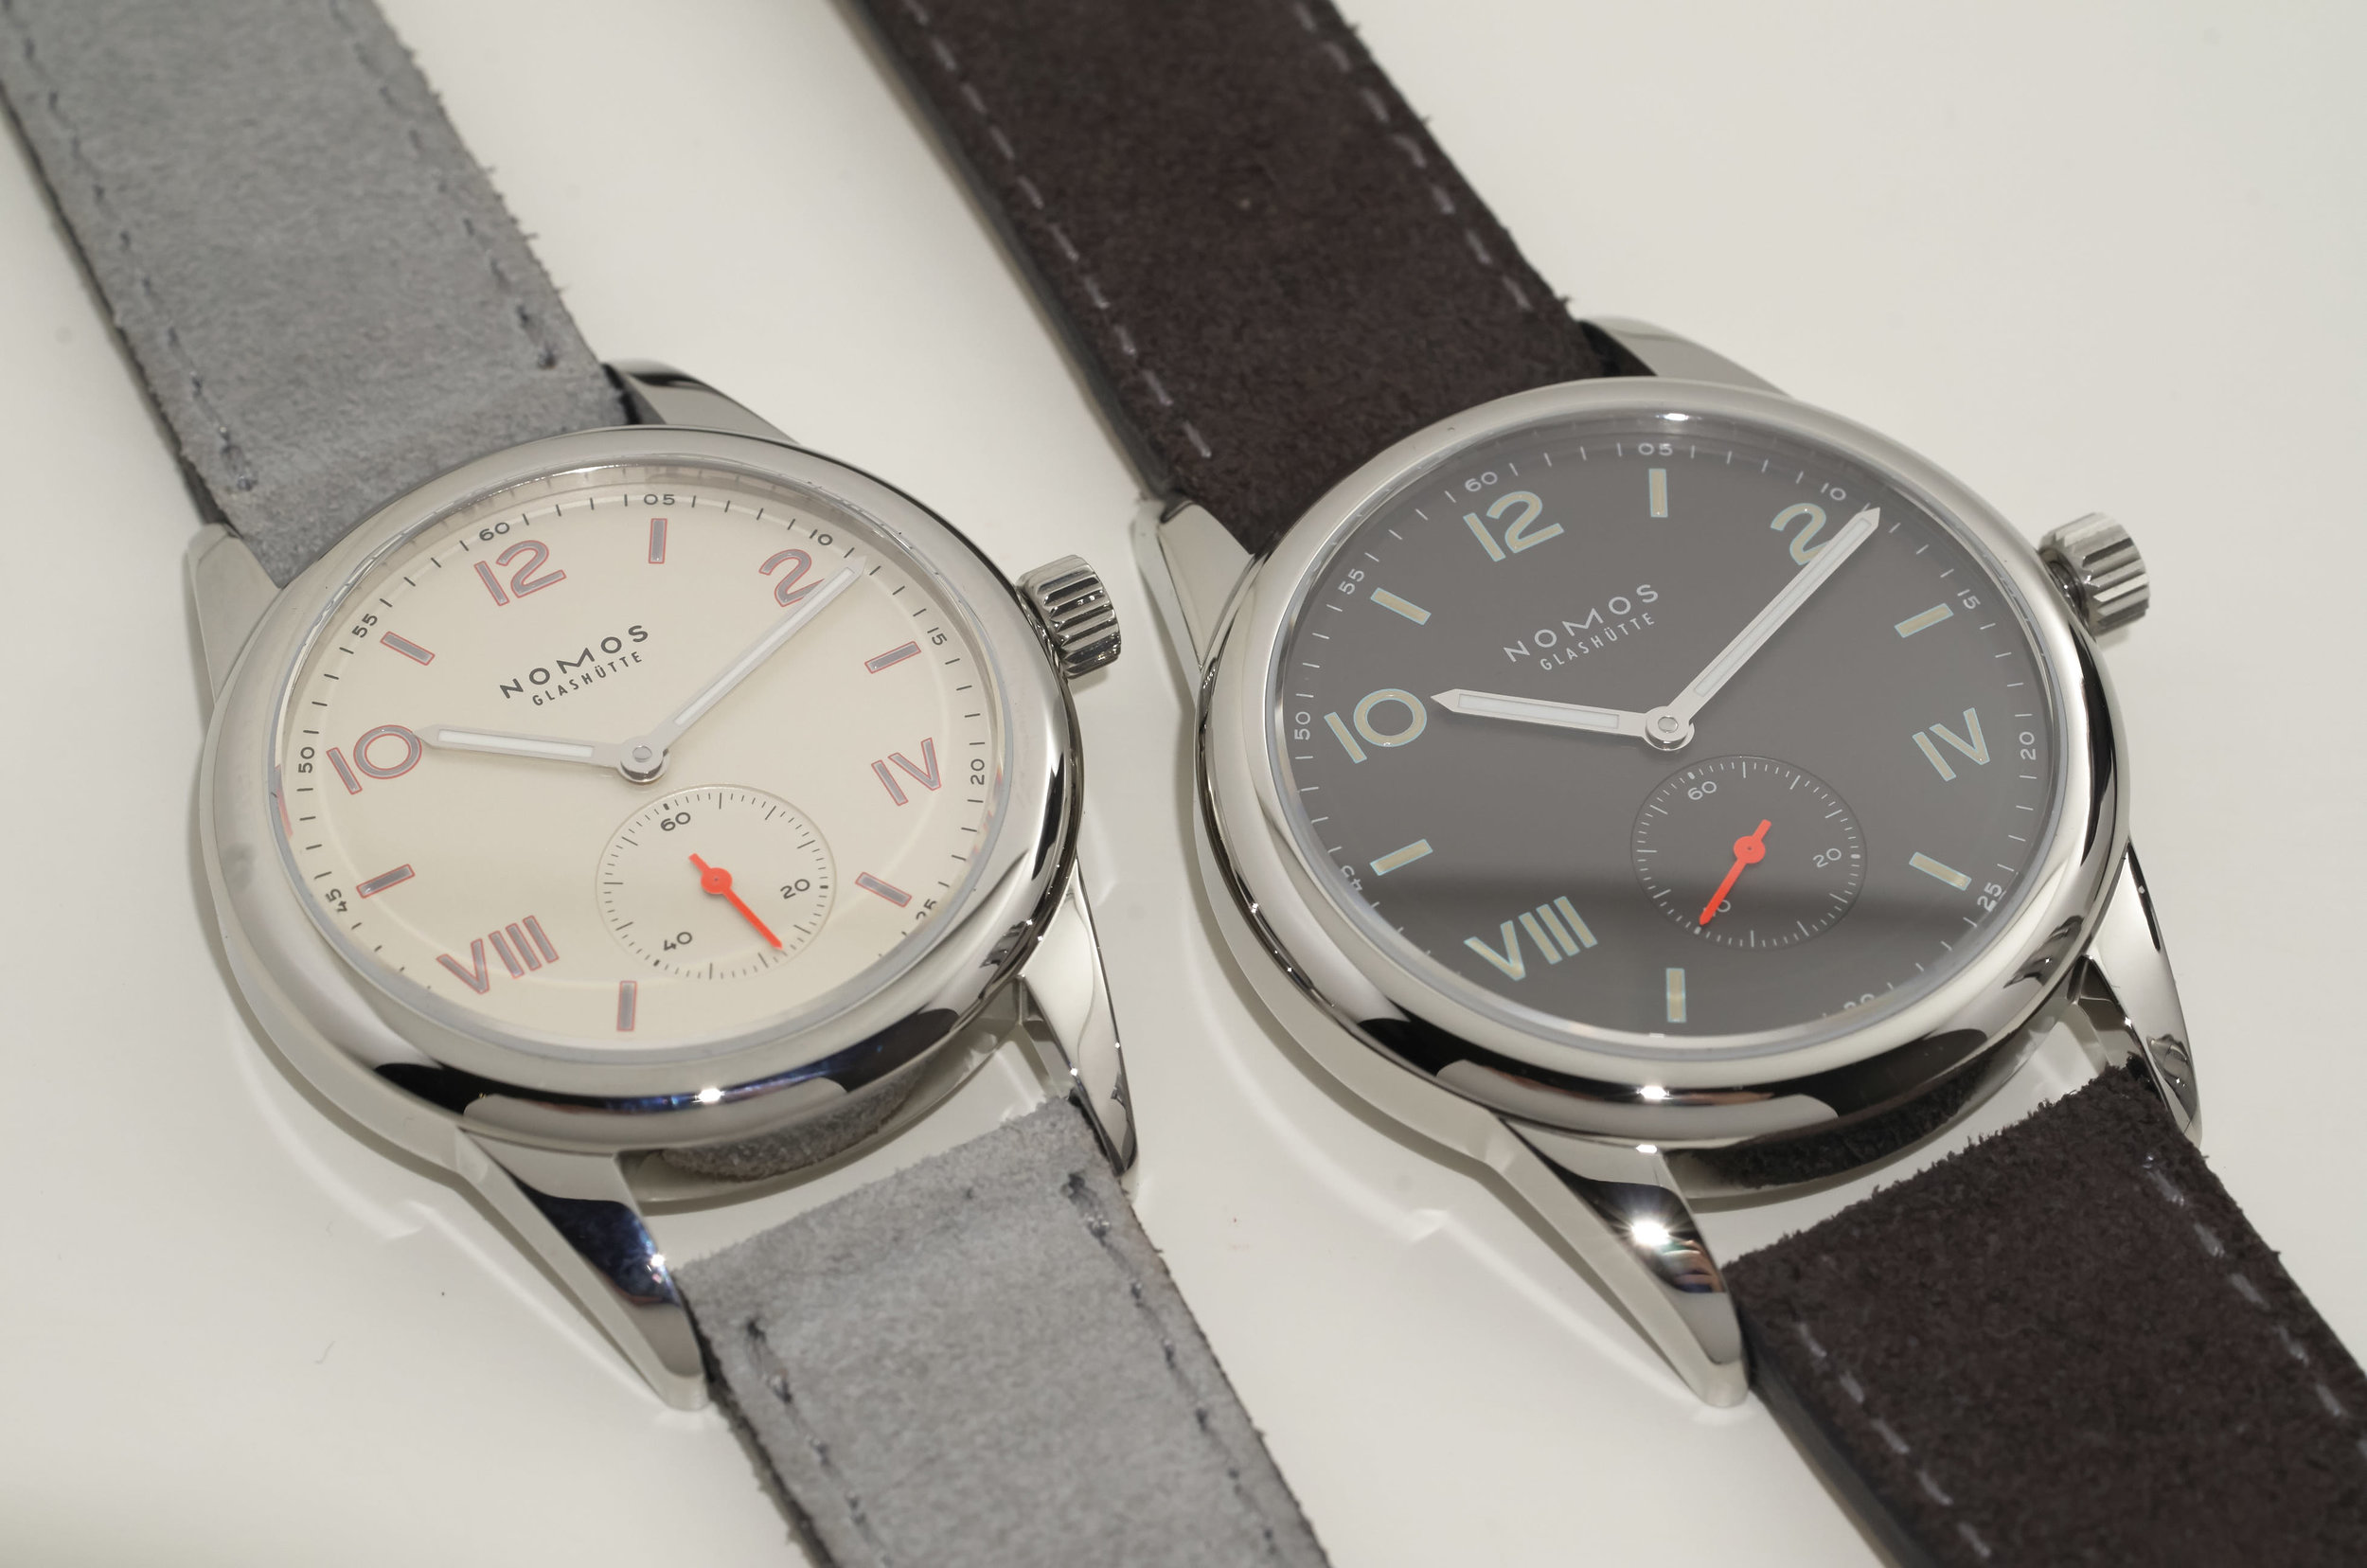 Nomos Club Campus ($1,500) and Nomos Club 38 Campus Nacht ($1,650)